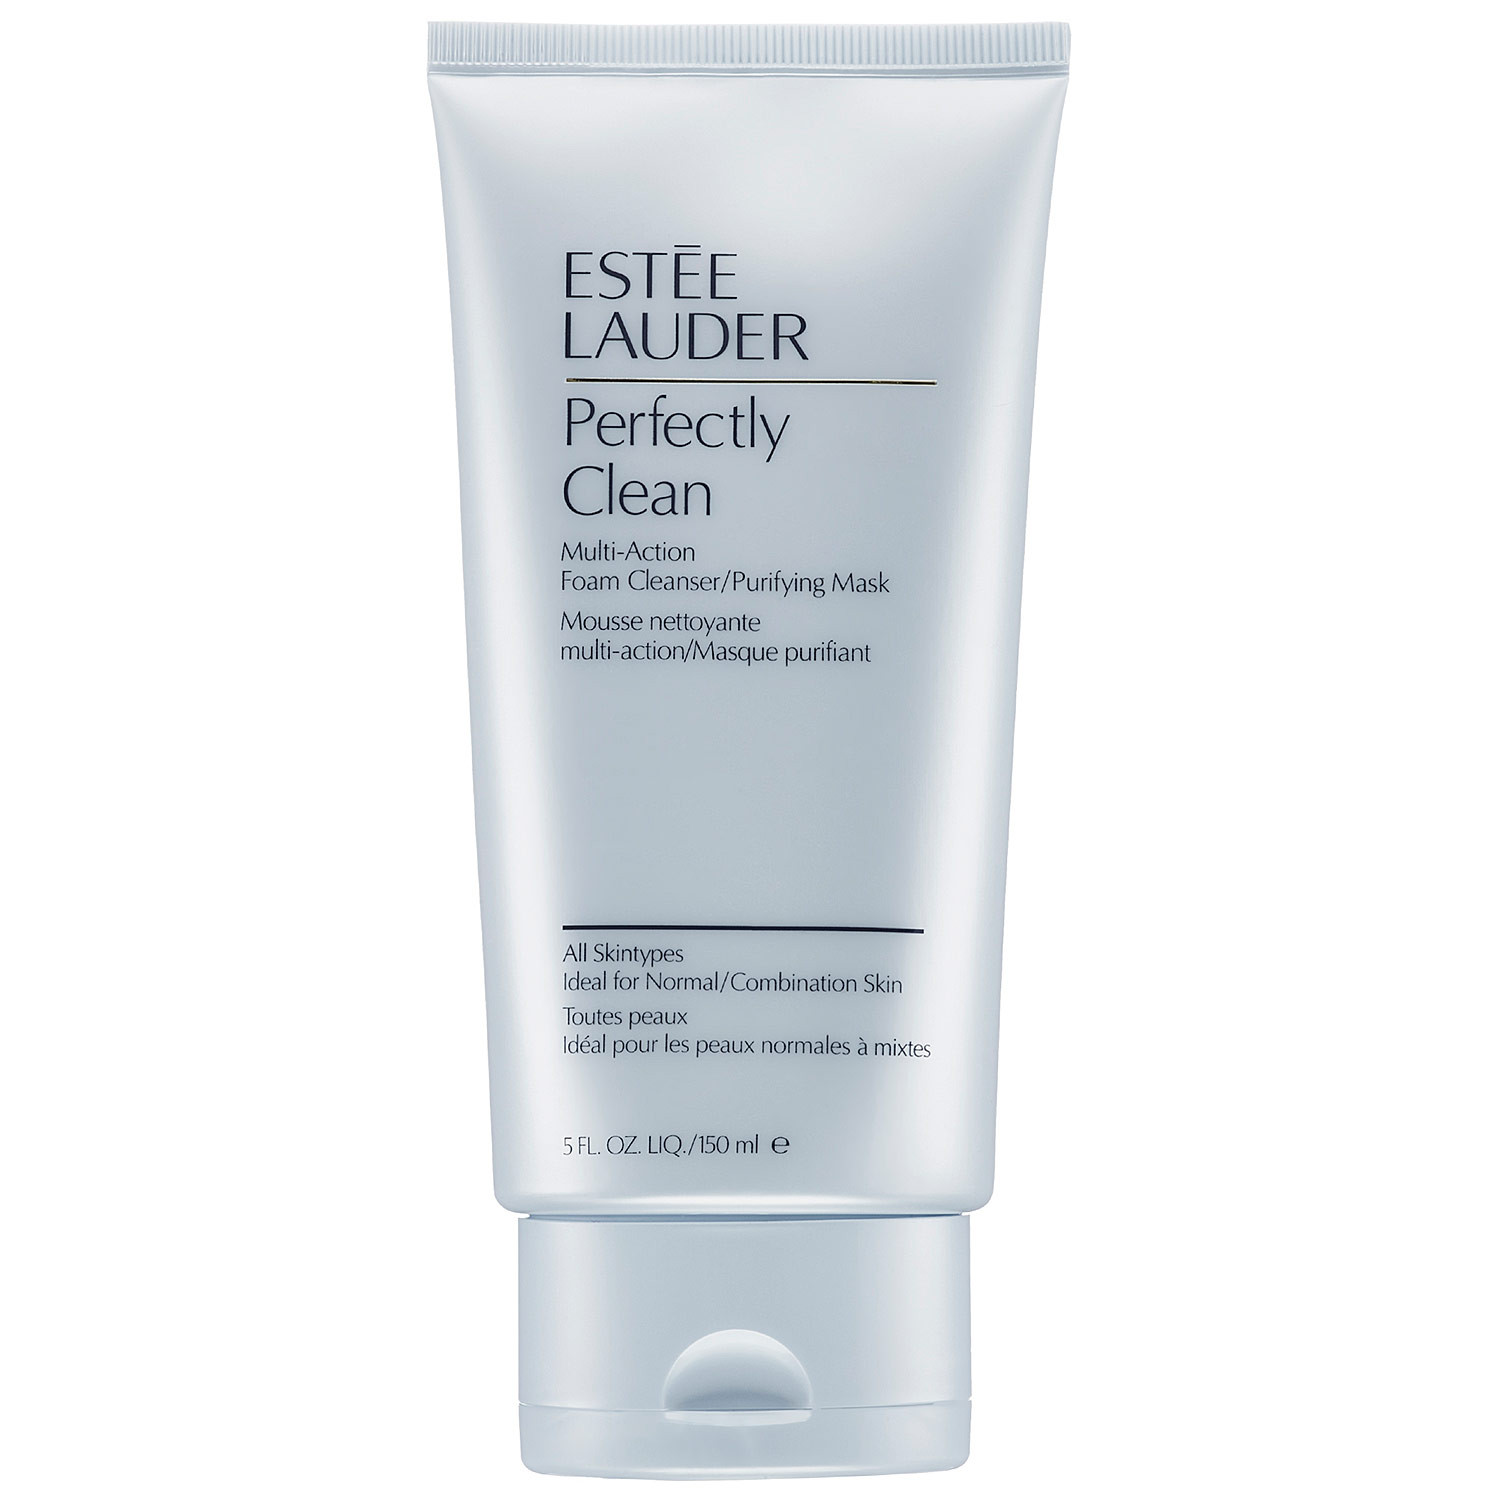 Estee Lauder Perfectly Clean Multi-Action Foam Cleanser 150ml